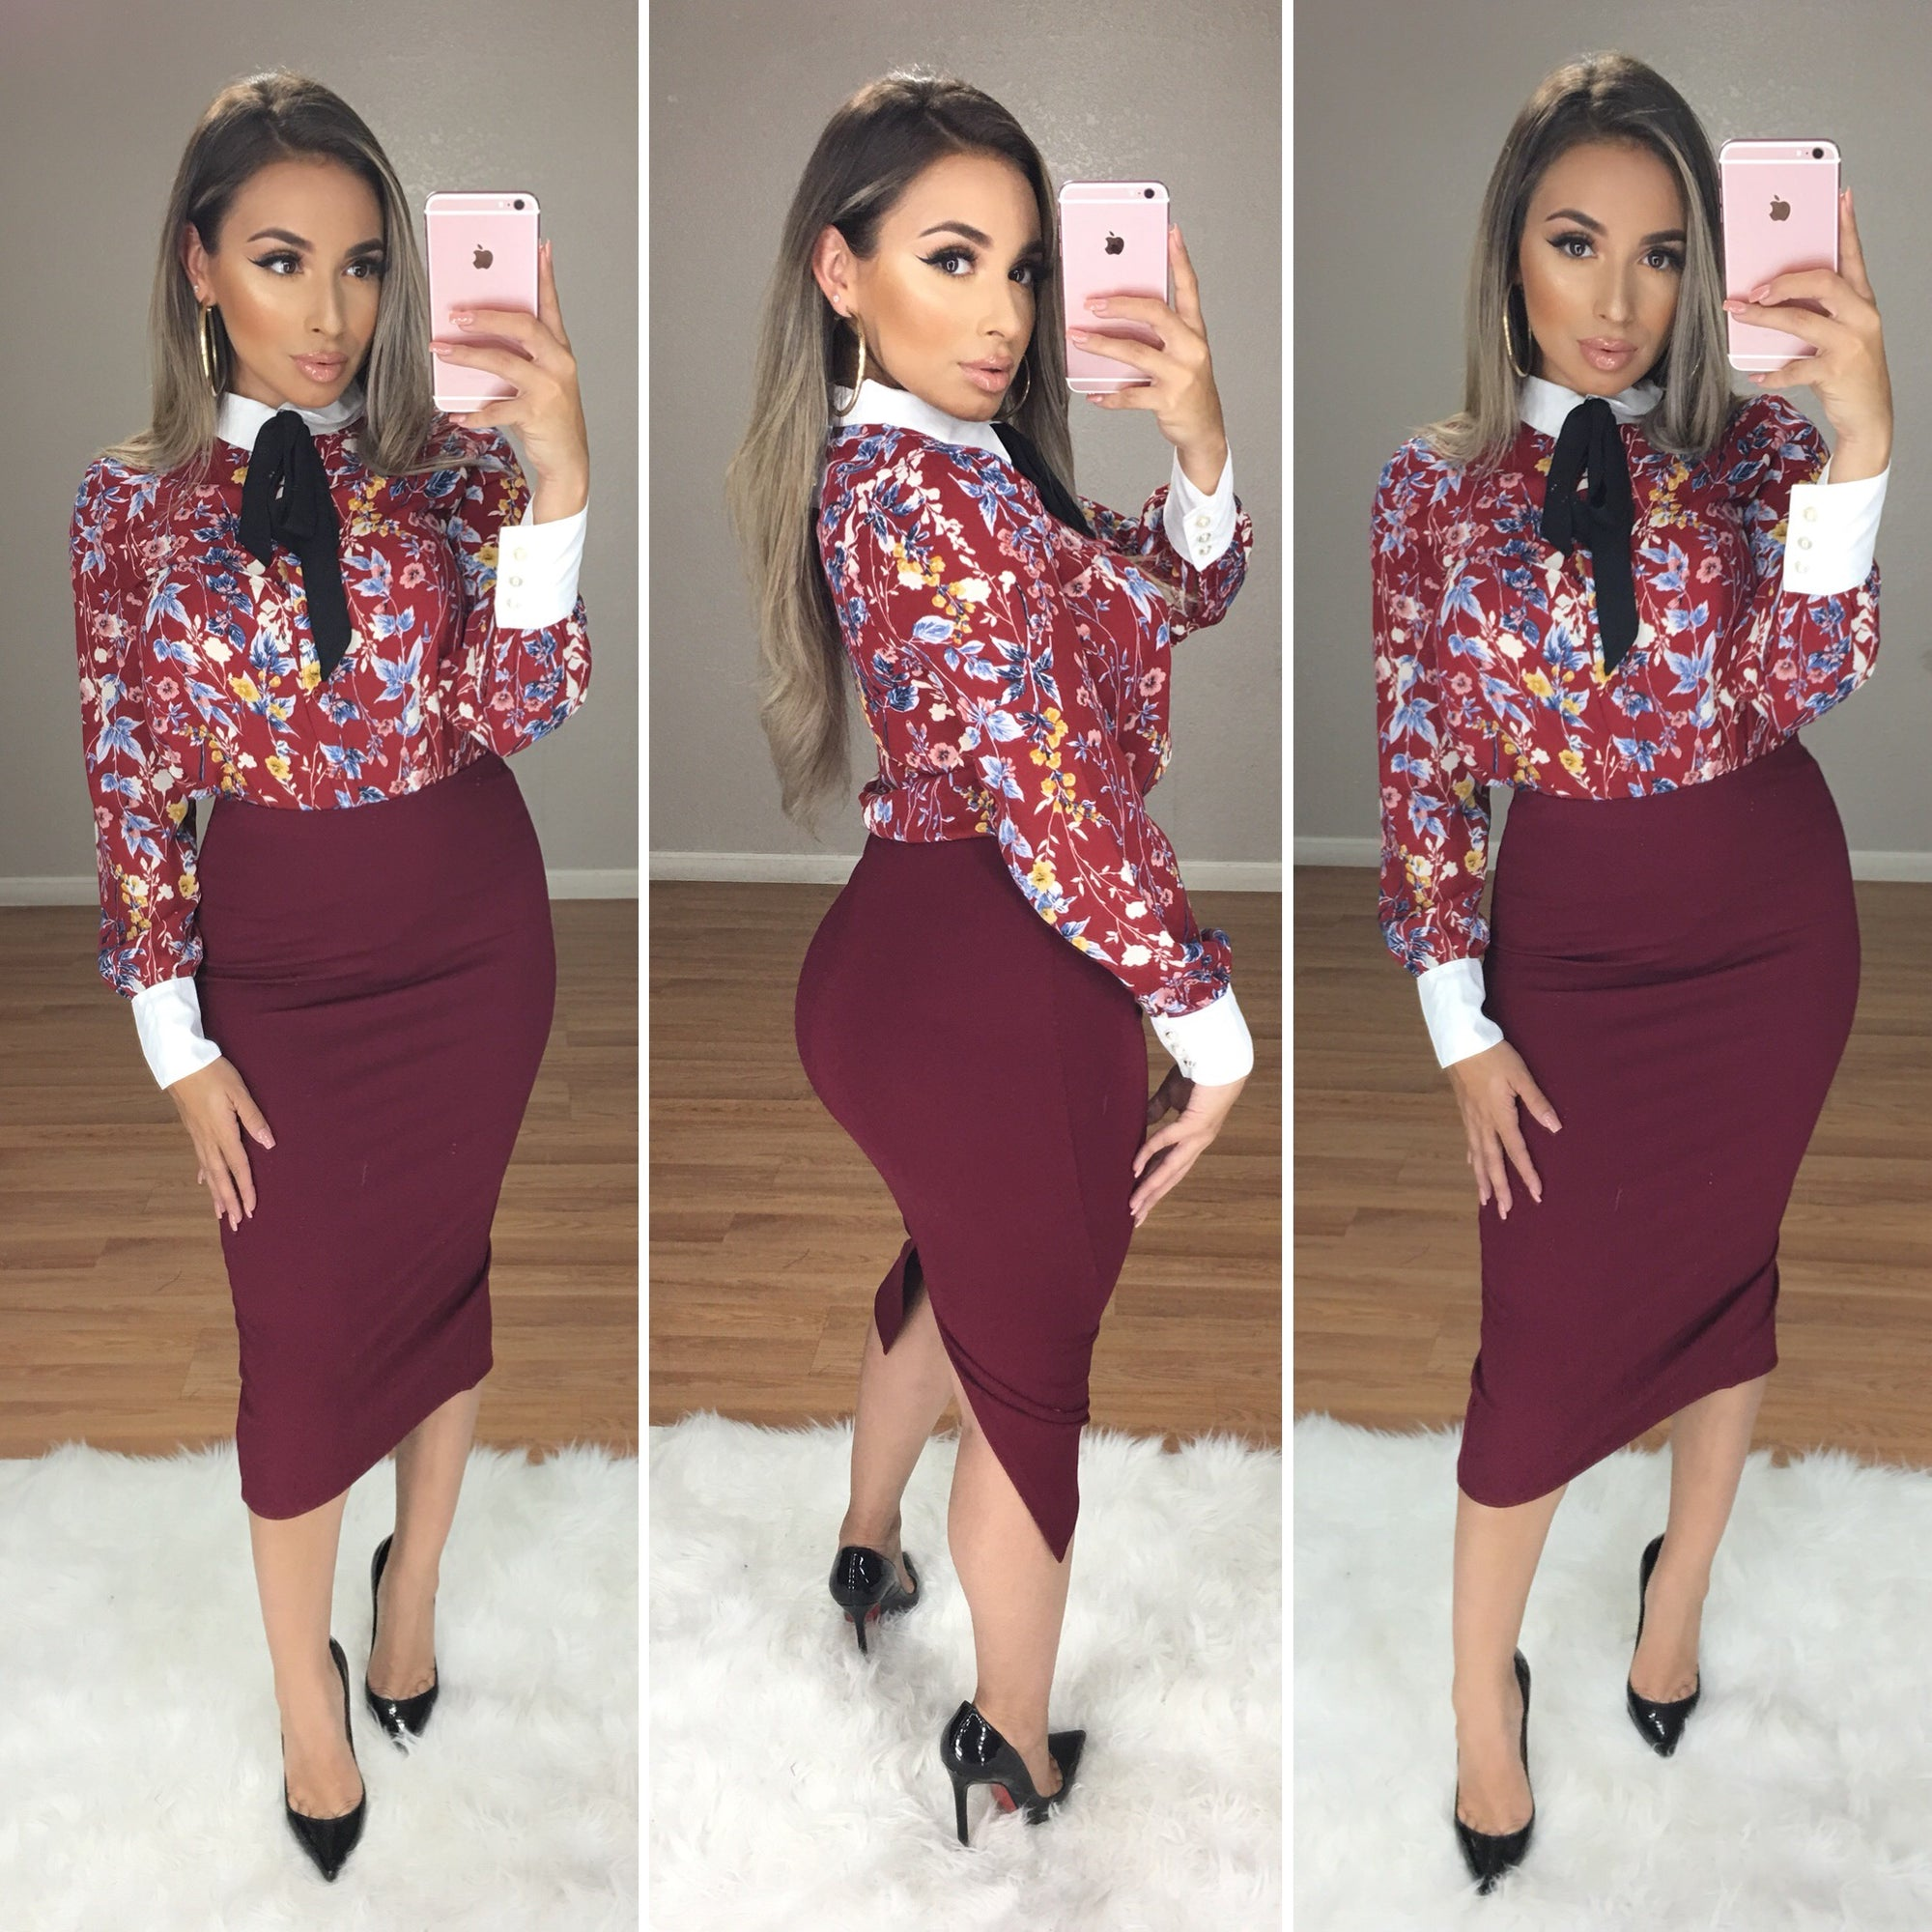 Alexa Keep it High Waist Couture Skirt (Burgundy)